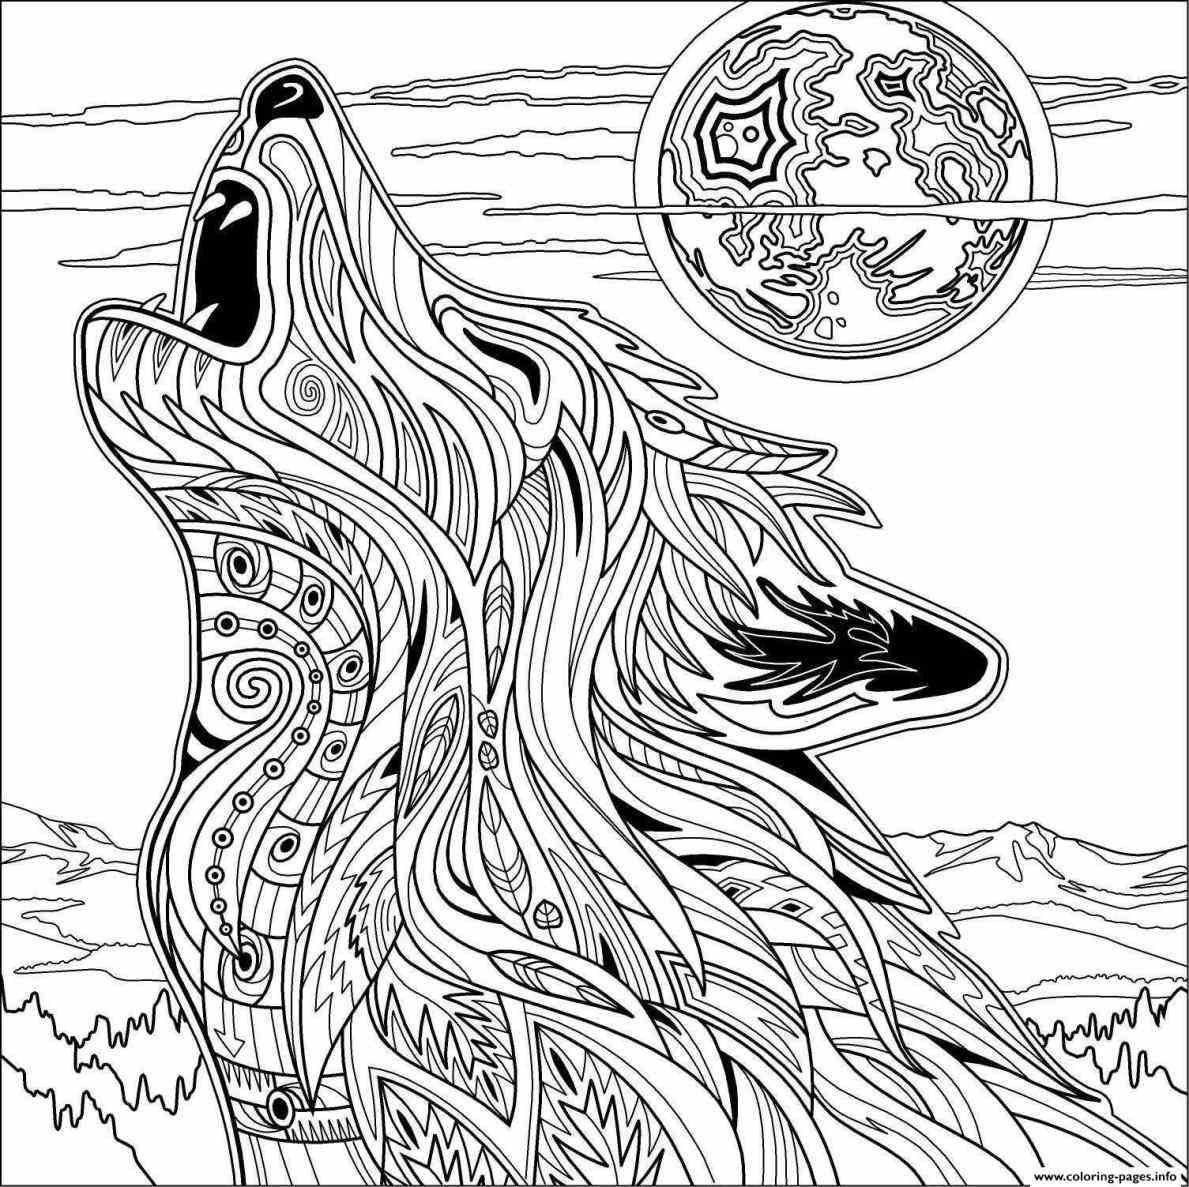 wolf pictures to color and print free printable wolf coloring pages for kids print color and pictures wolf to